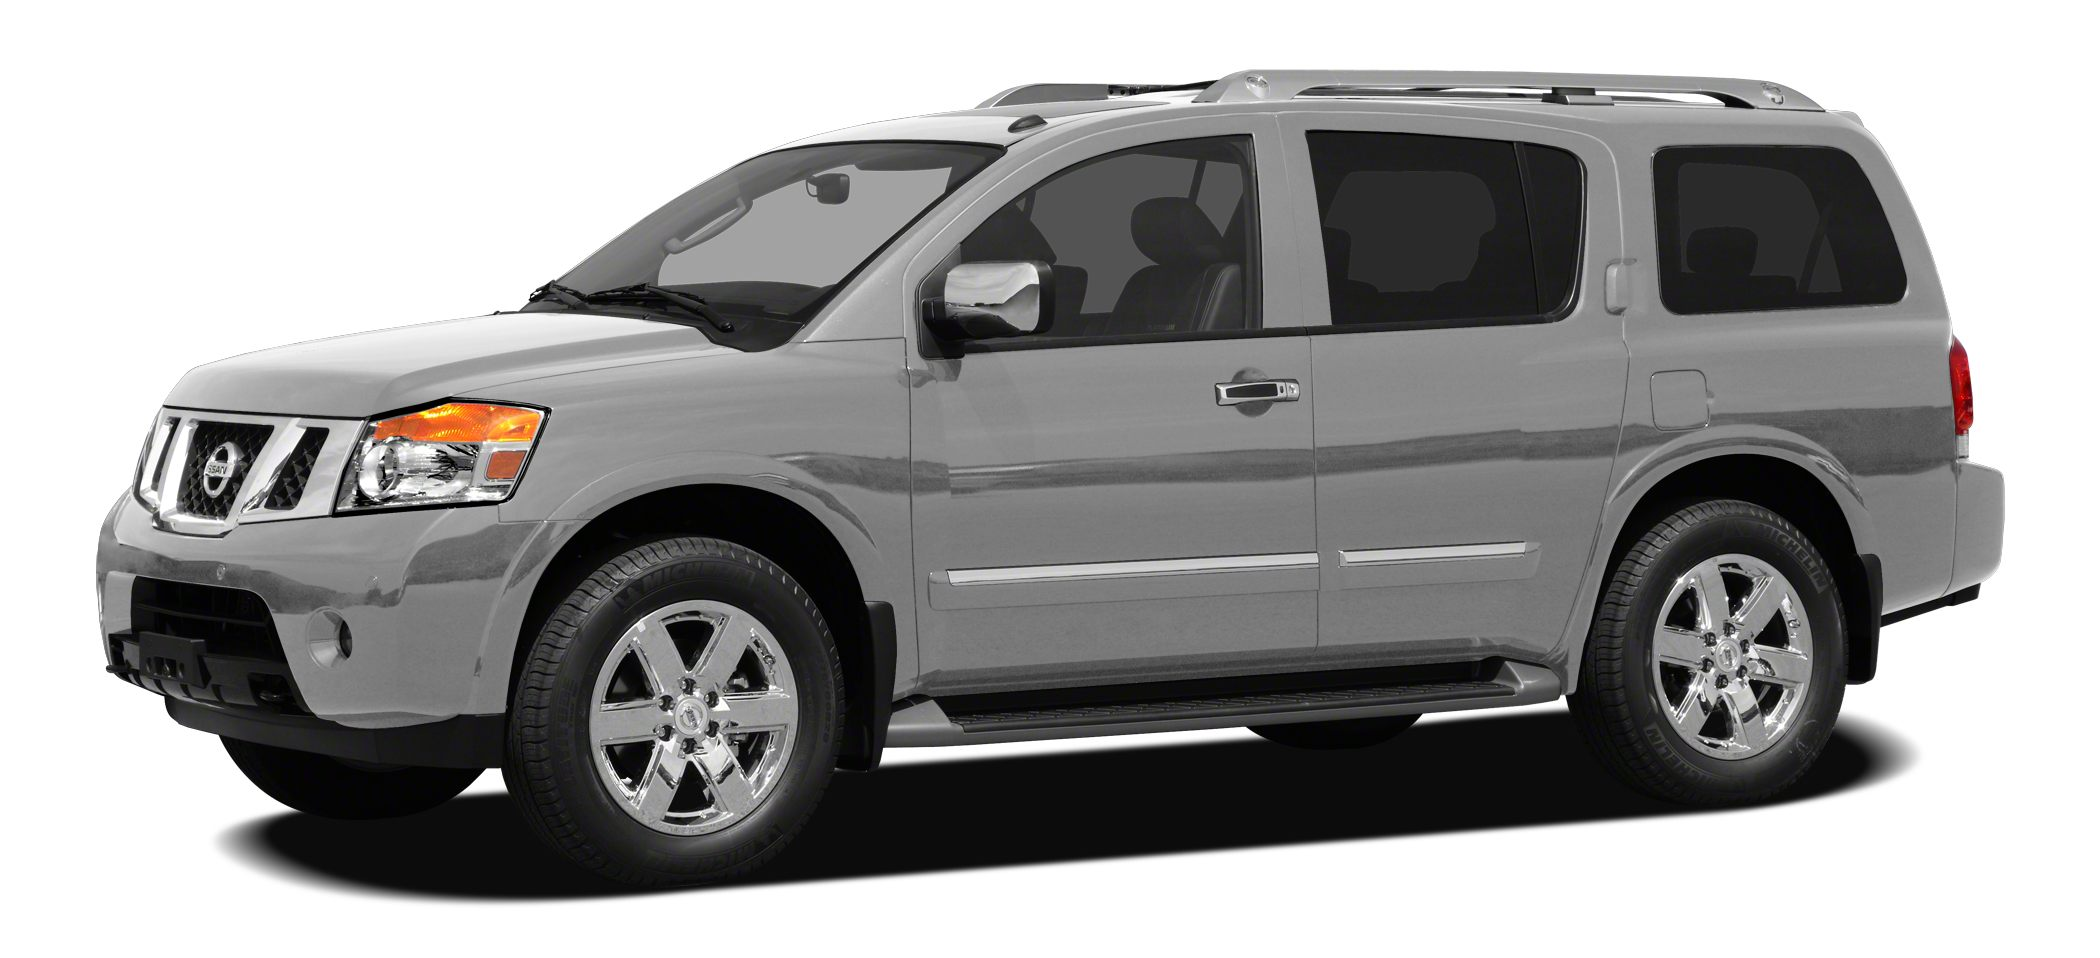 2012 Nissan Armada Platinum Miles 32352Color Silver Stock P2682 VIN 5N1BA0NF6CN619756